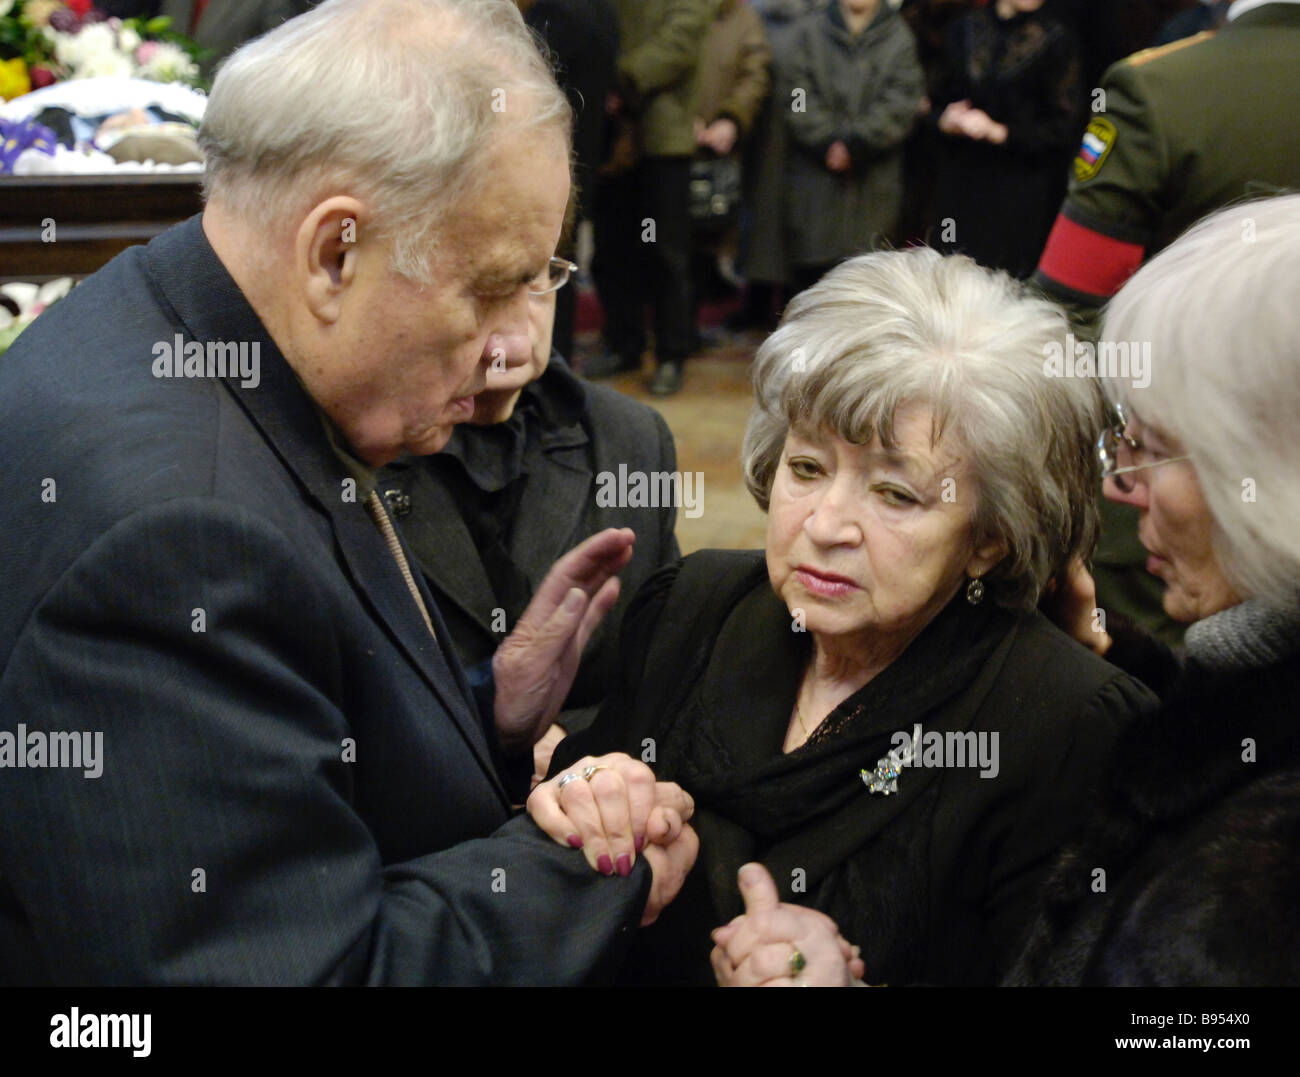 Film director Eldar Ryazanov expressing condolences to composer Andrei Petrov s widow center The civil funeral rites - Stock Image